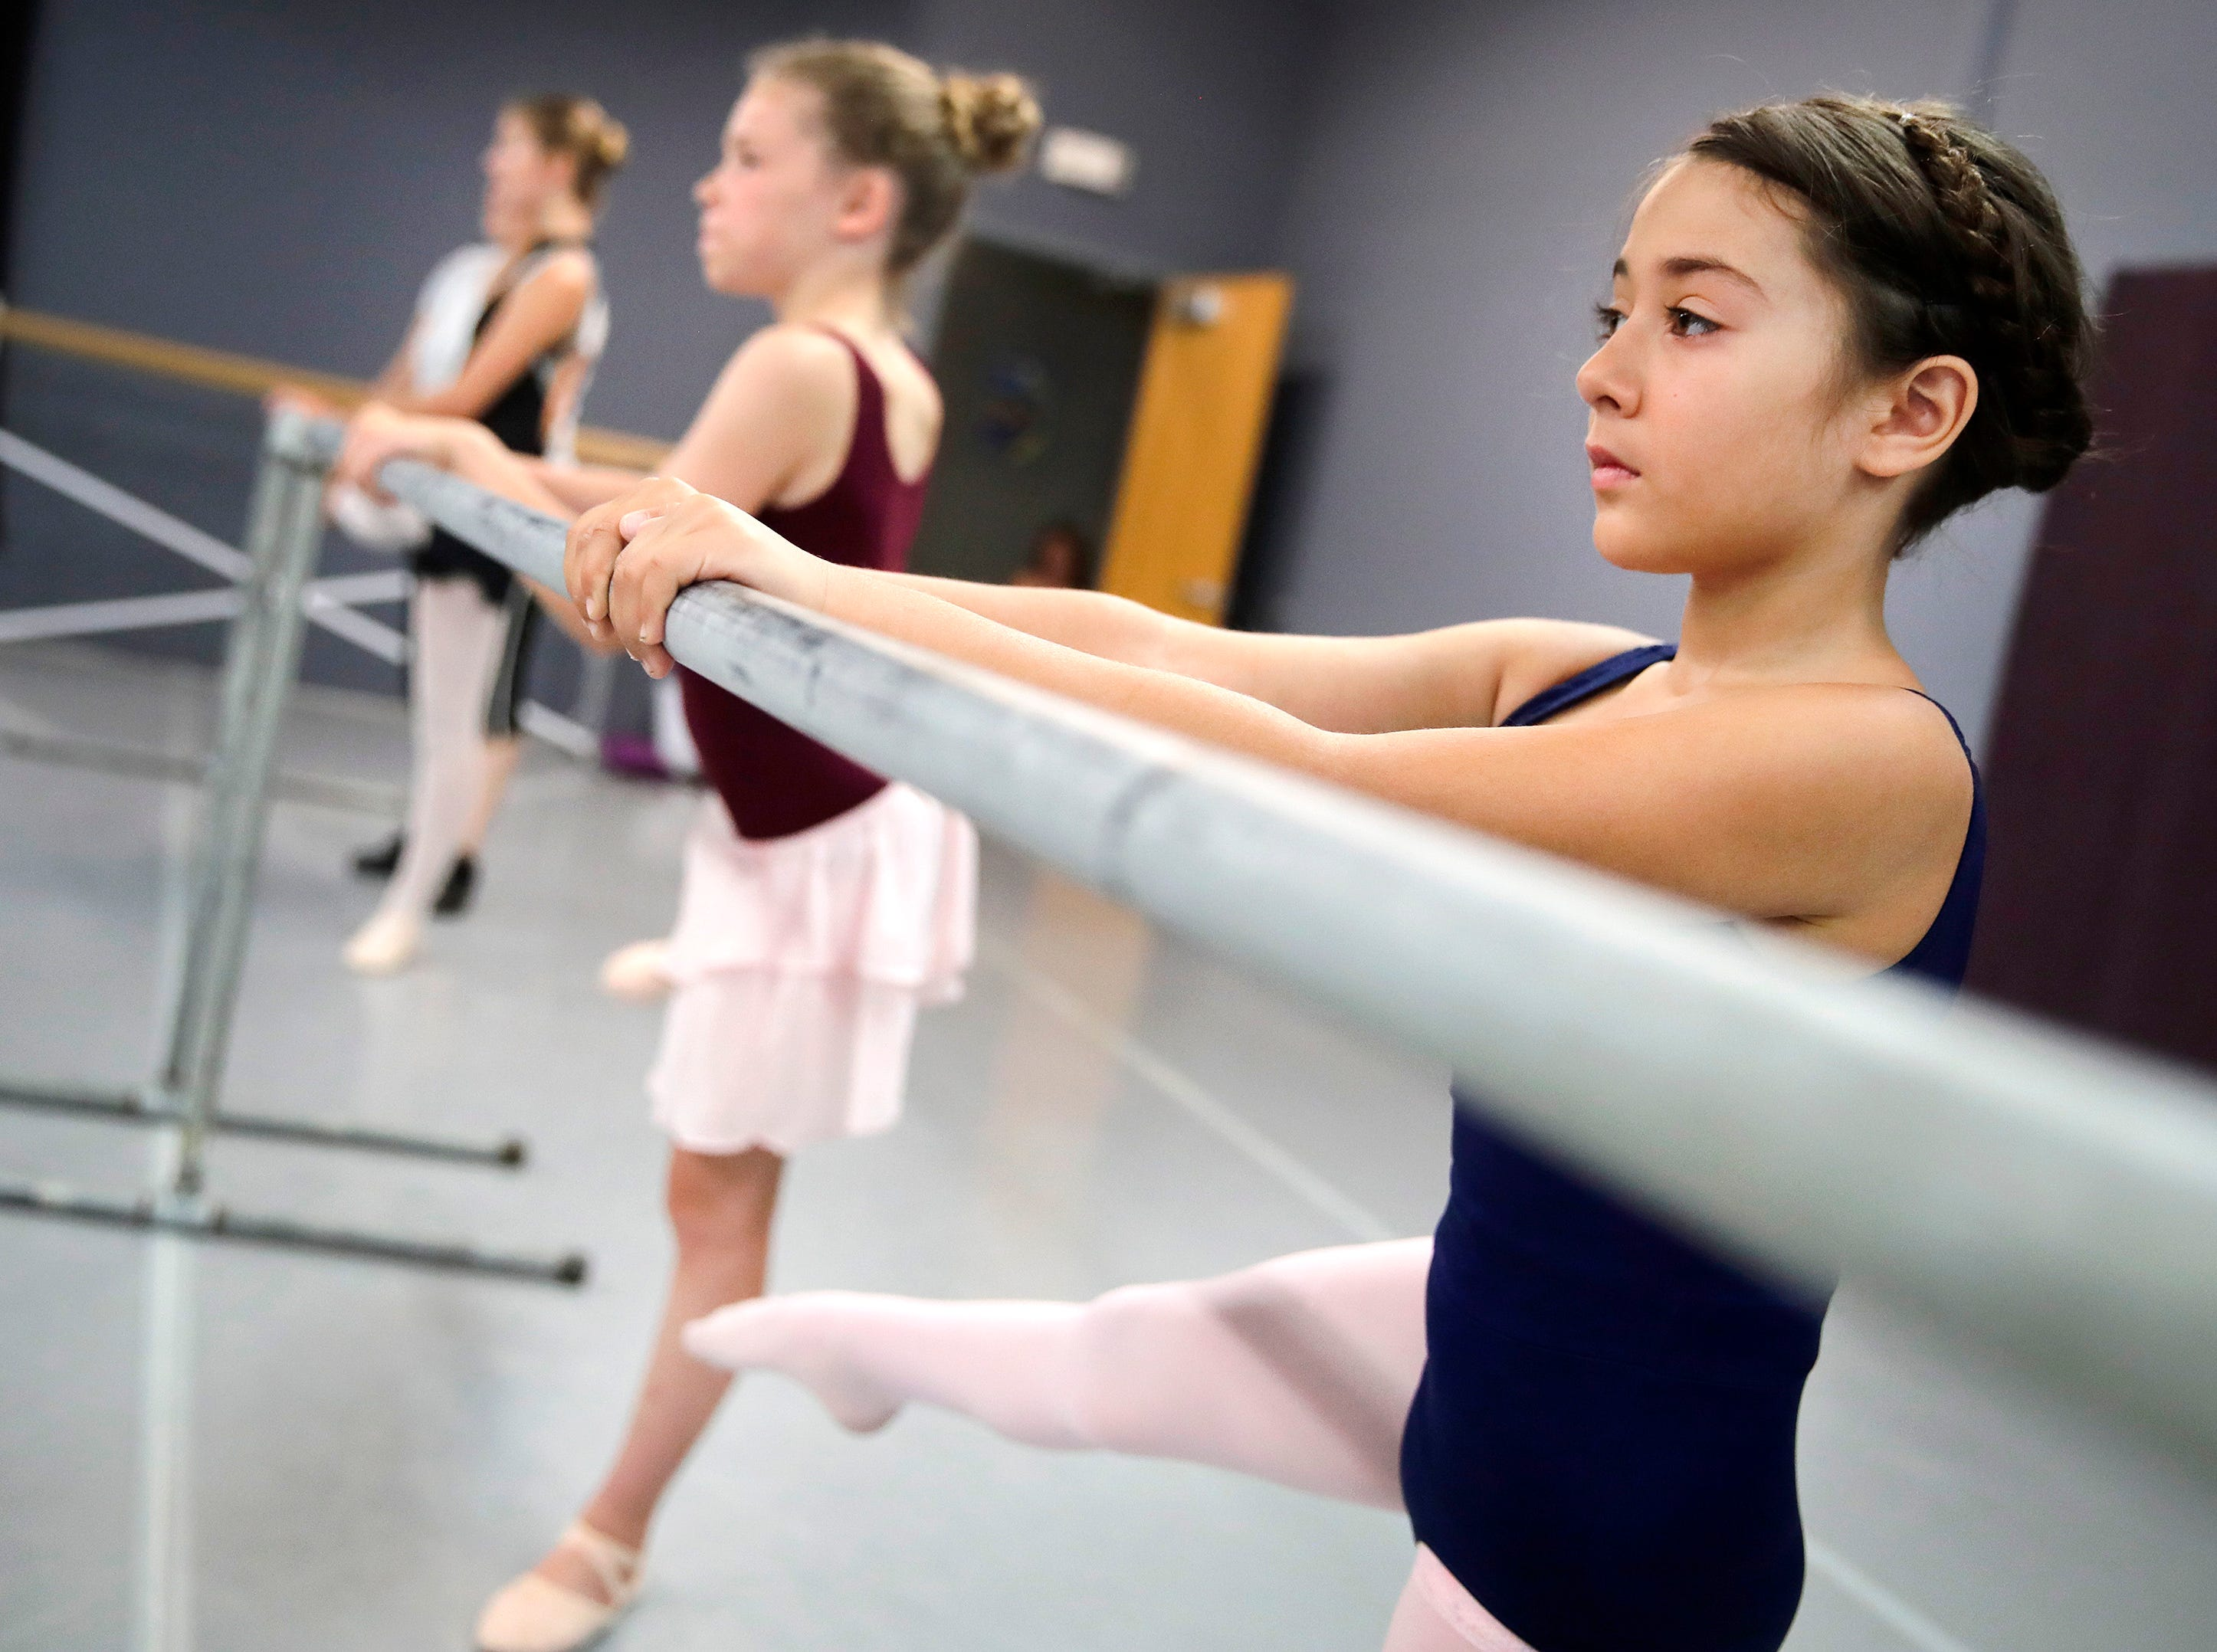 Satya Young-Hofkens, 8, of Appleton, Kaylyn Miller, 9, of Neenah, and Lydia Van boxtel, 14, of Menasha, participate in a beginning ballet class at Valley Academy for the Arts Tuesday, July 17, 2018, in Neenah, Wis. 